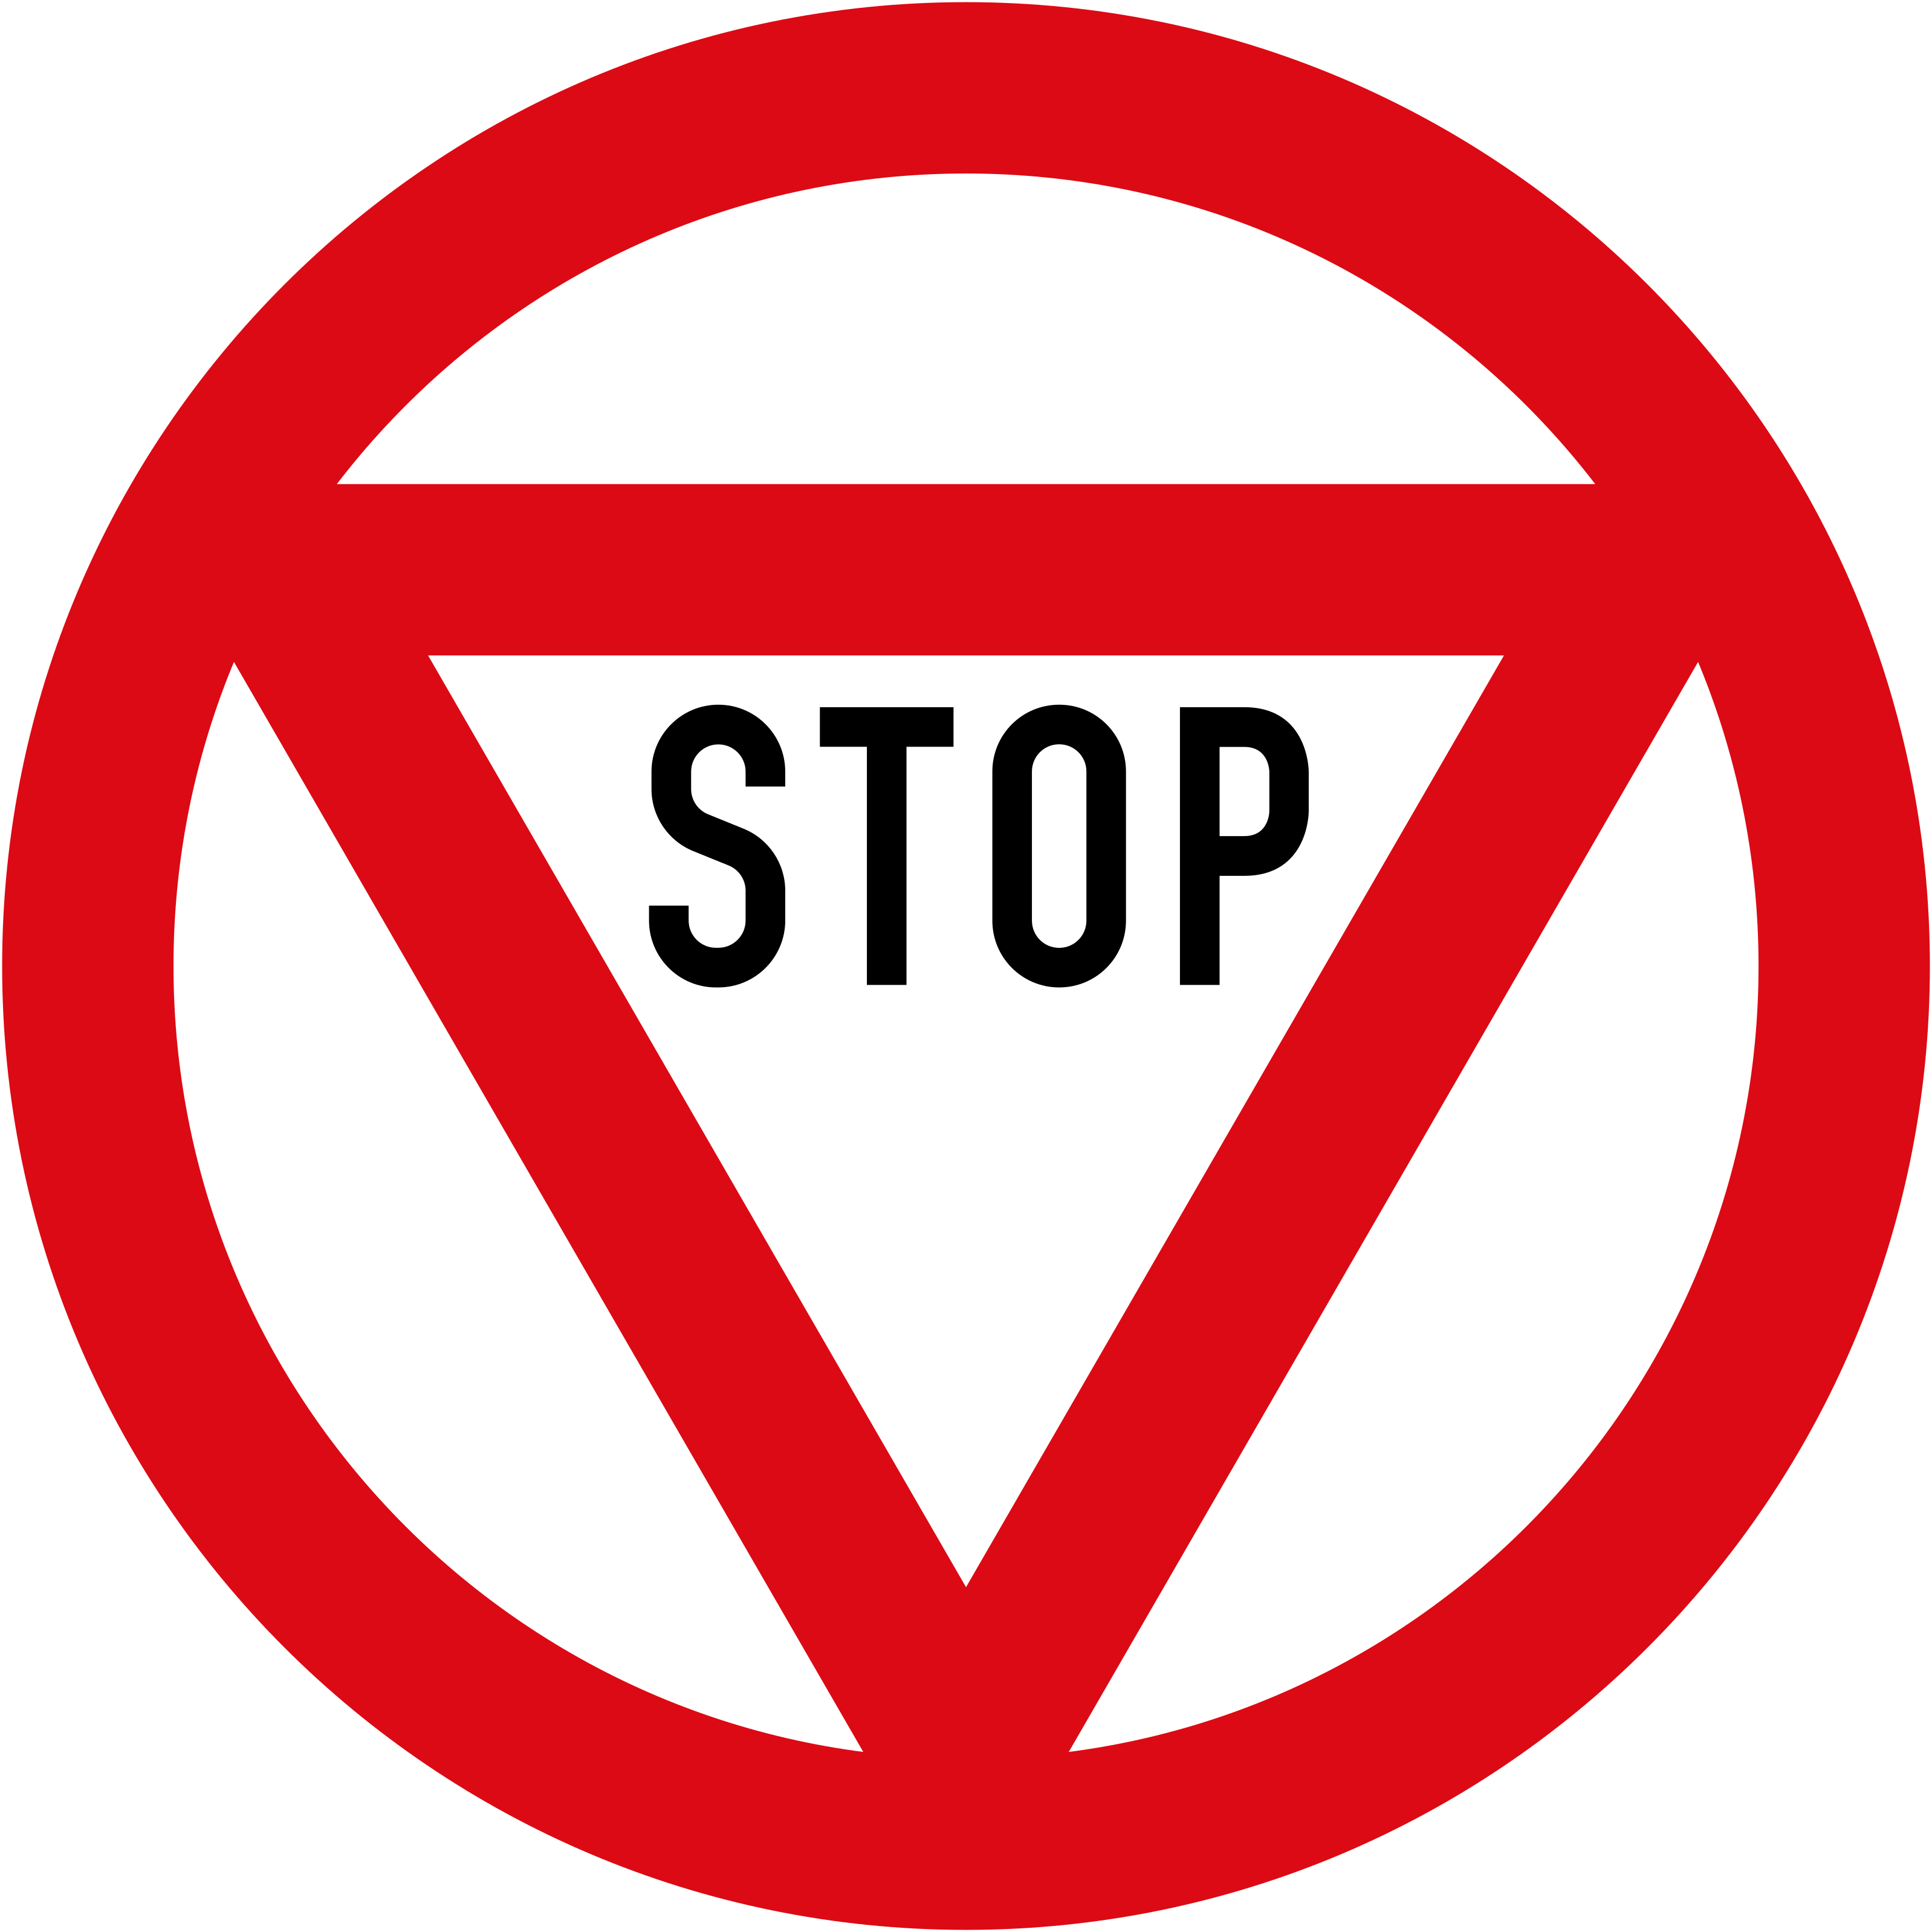 Vienna Convention stop sign B2b variant 1